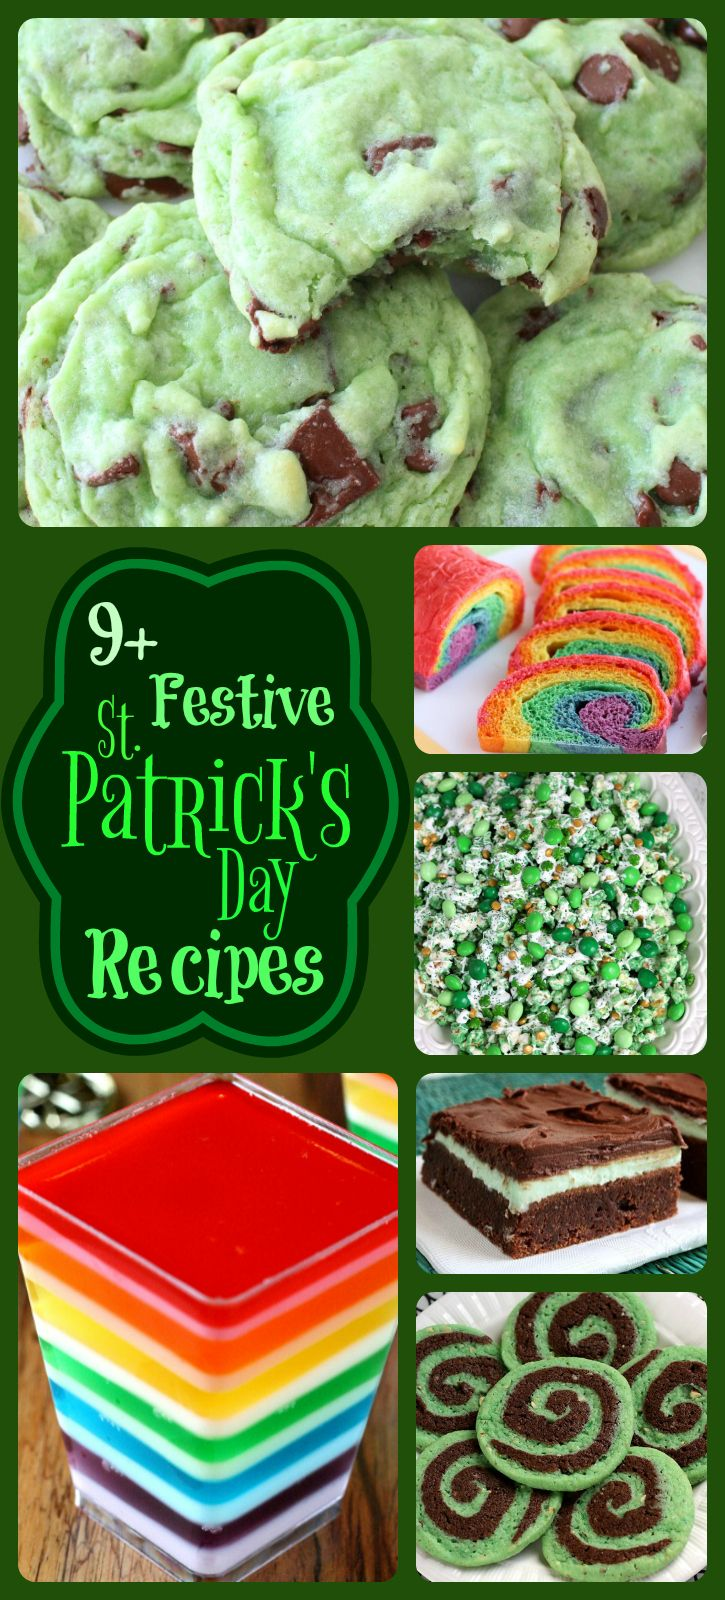 Easy, fun & festive recipes for St. Patrick's Day - our favorites all in one place! Cute, simple ideas for a fun St.Patty's Day from Butter With A Side of Bread